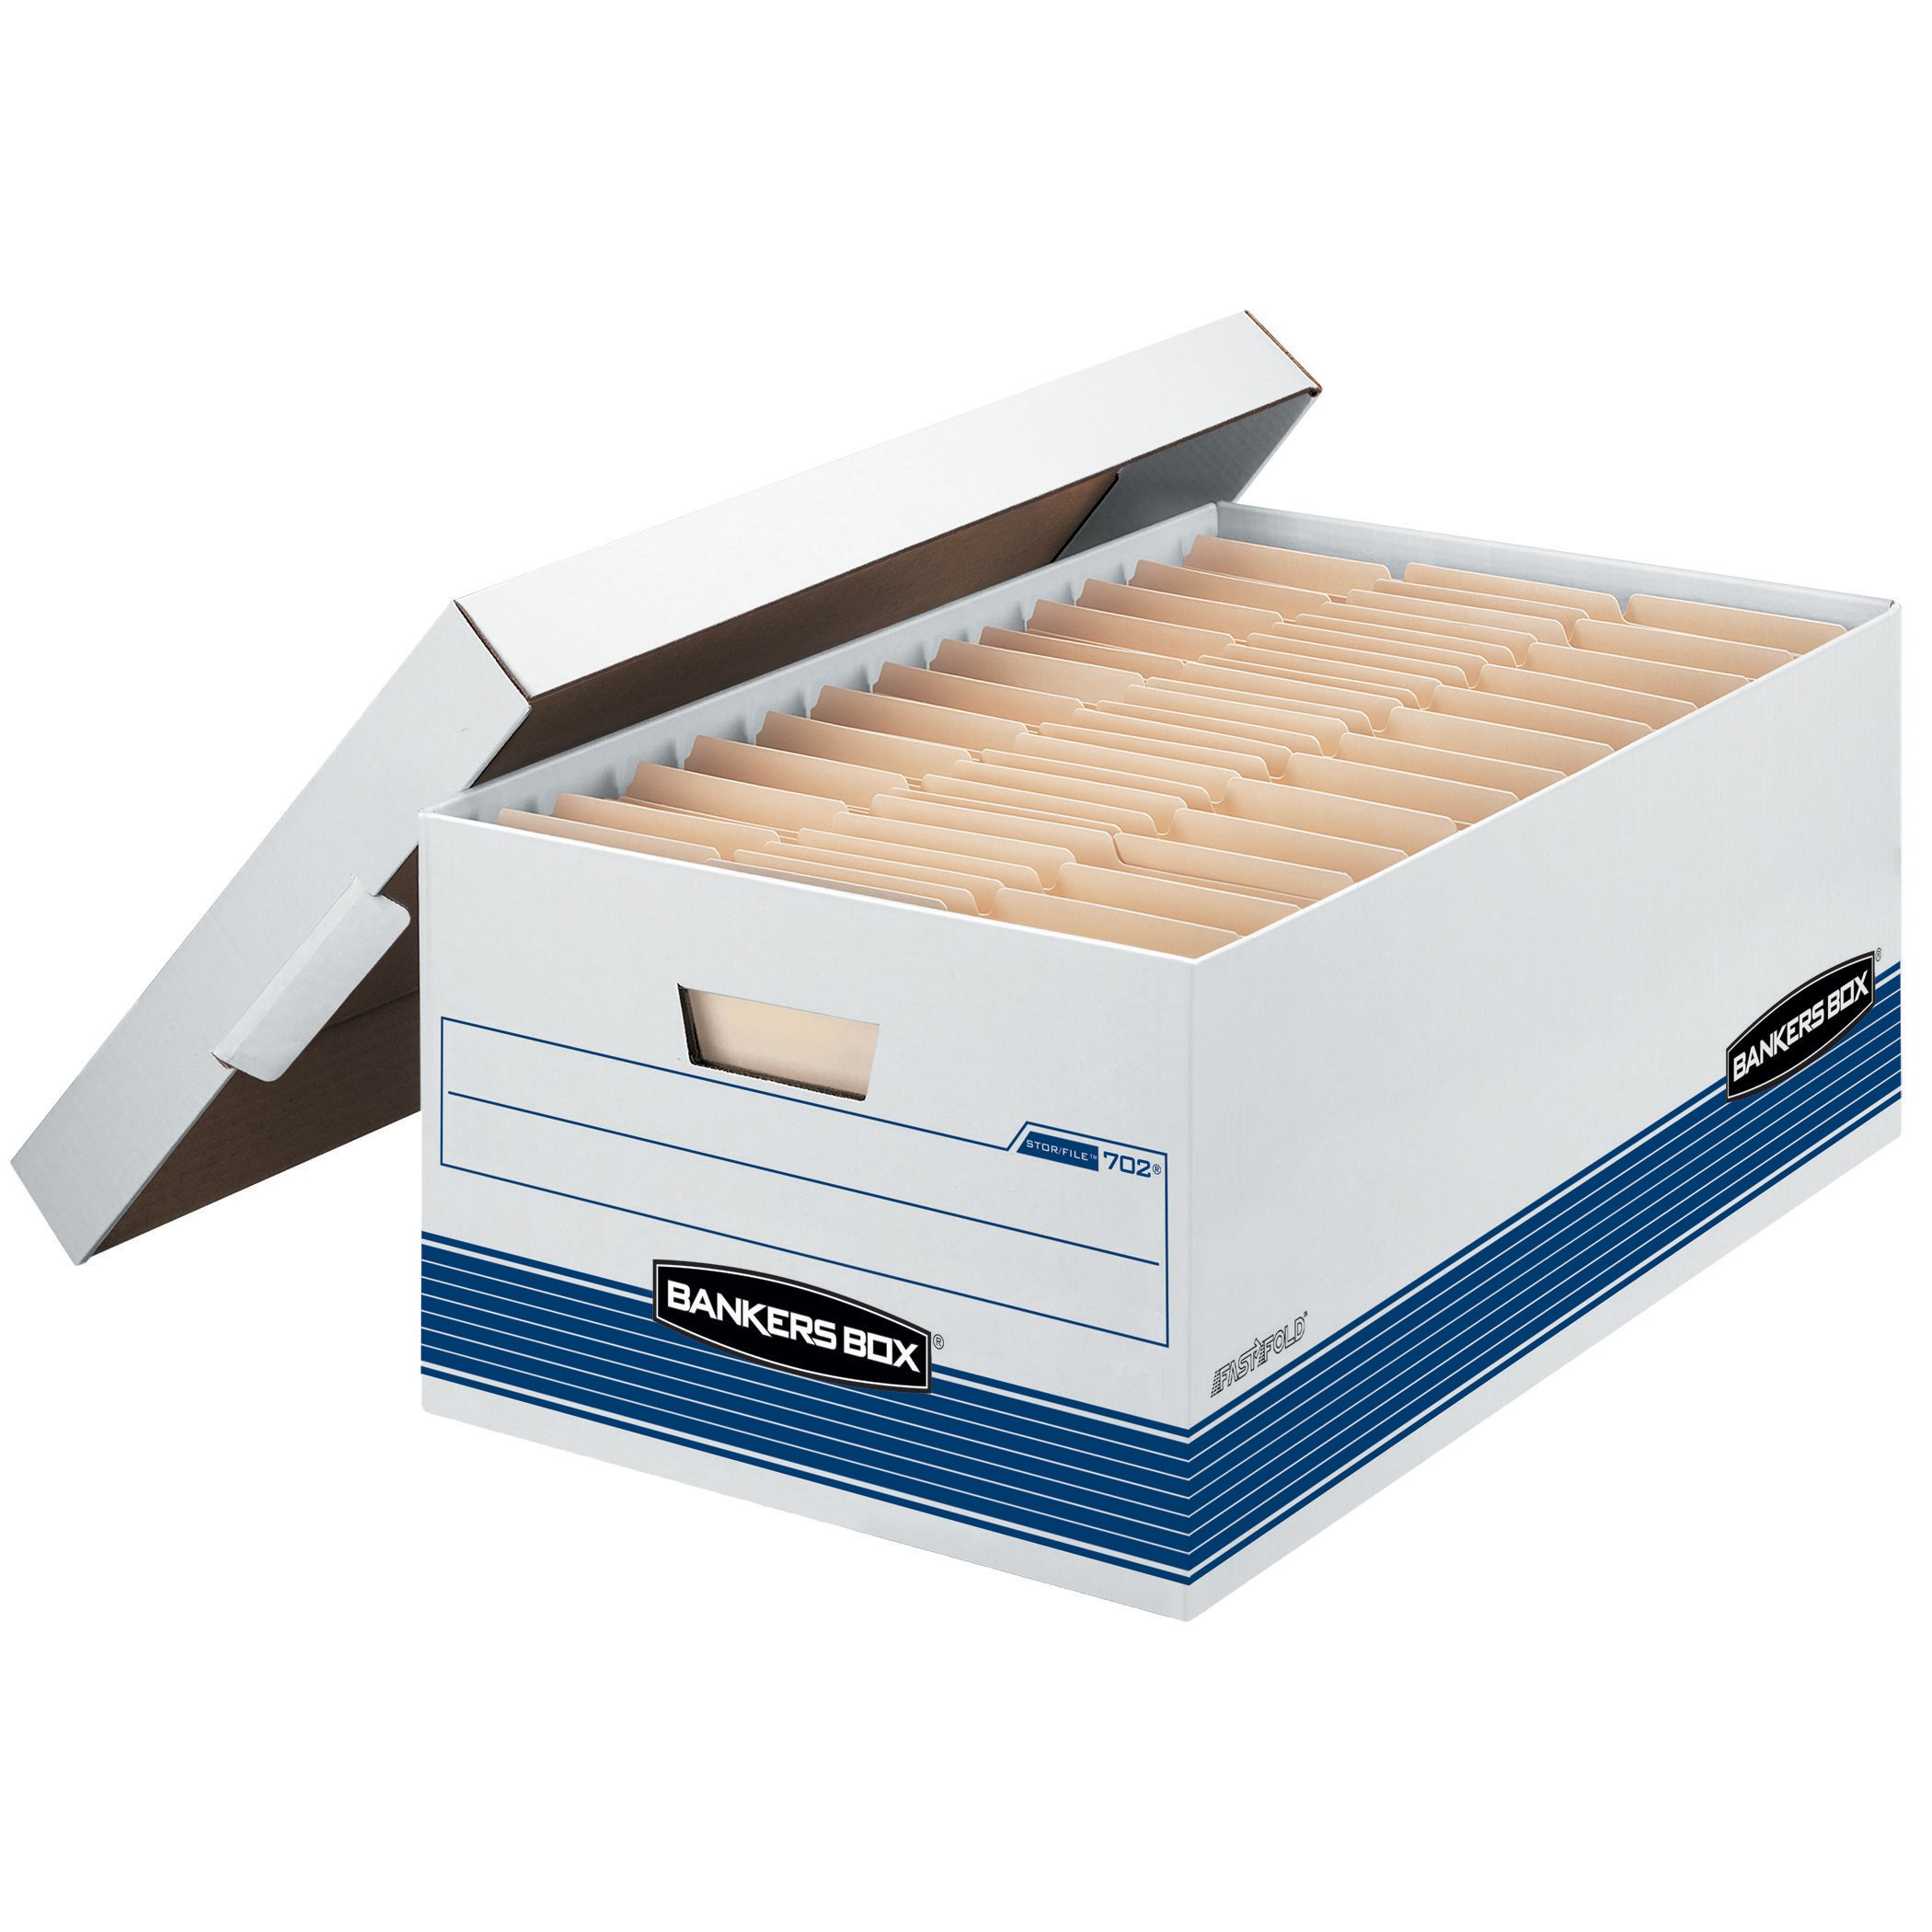 Bankers Box STOR/FILE Medium-Duty Storage Boxes, FastFold, Lift-Off Lid, Legal, Case of 12 (00702) by Bankers Box